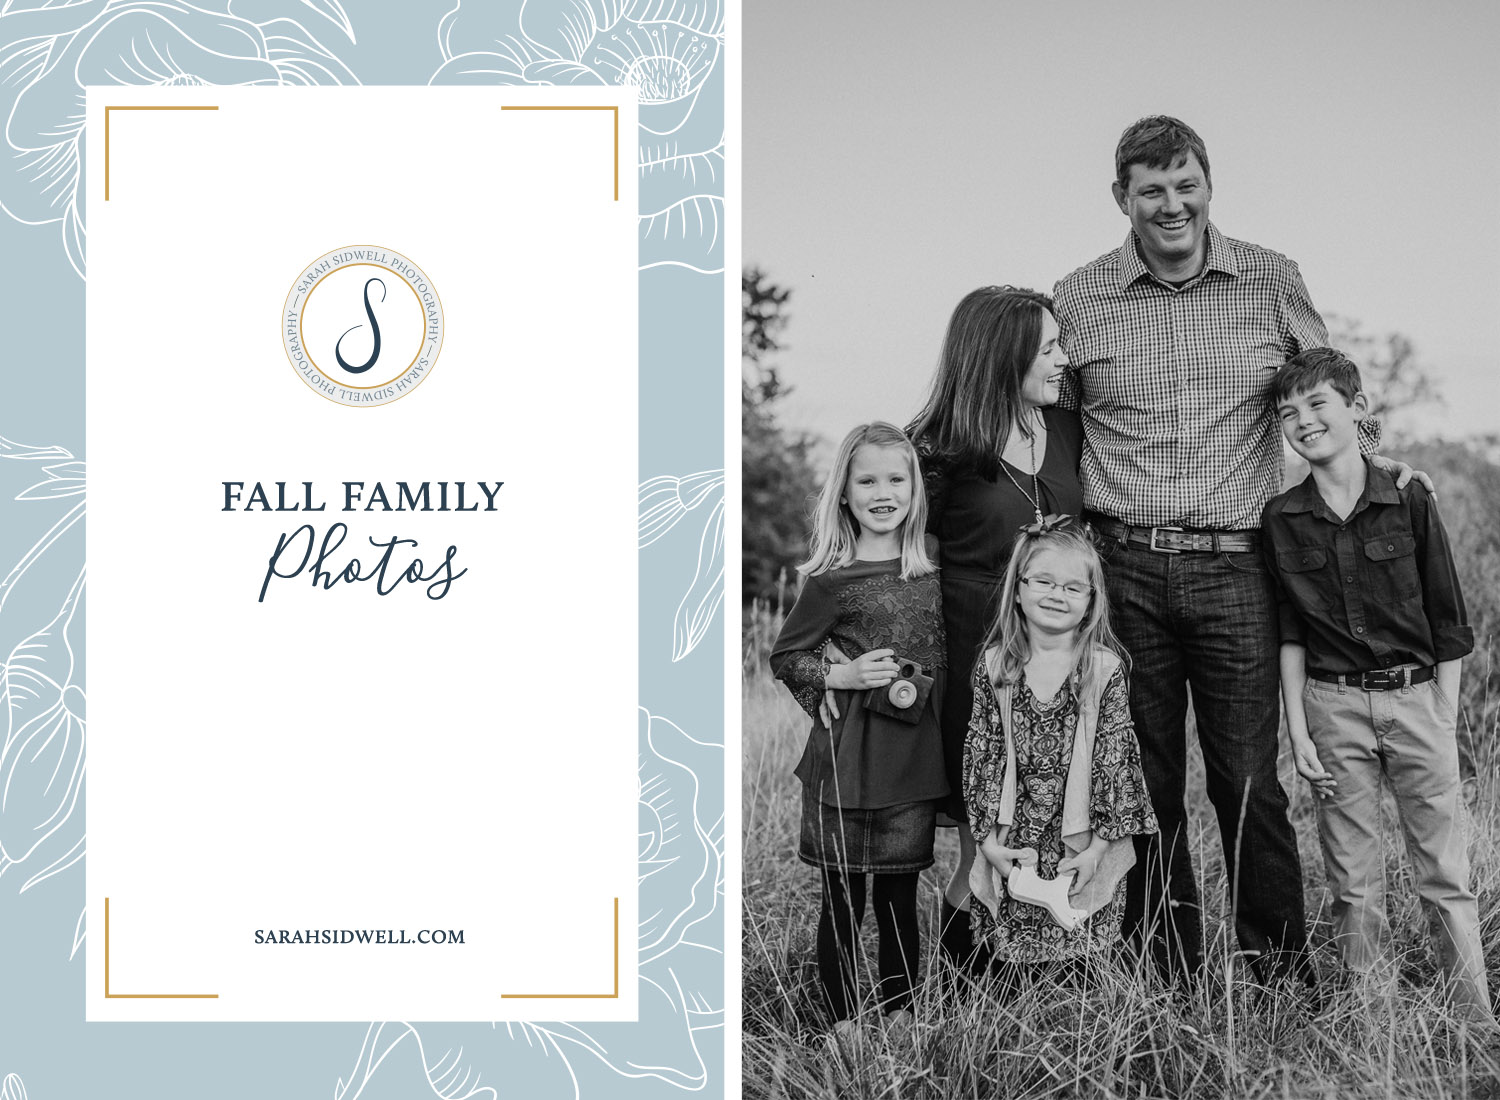 nashville photographer takes outdoor fall family photos of family who choose great fall clothes to wear to their session in Franklin Tn.jpg